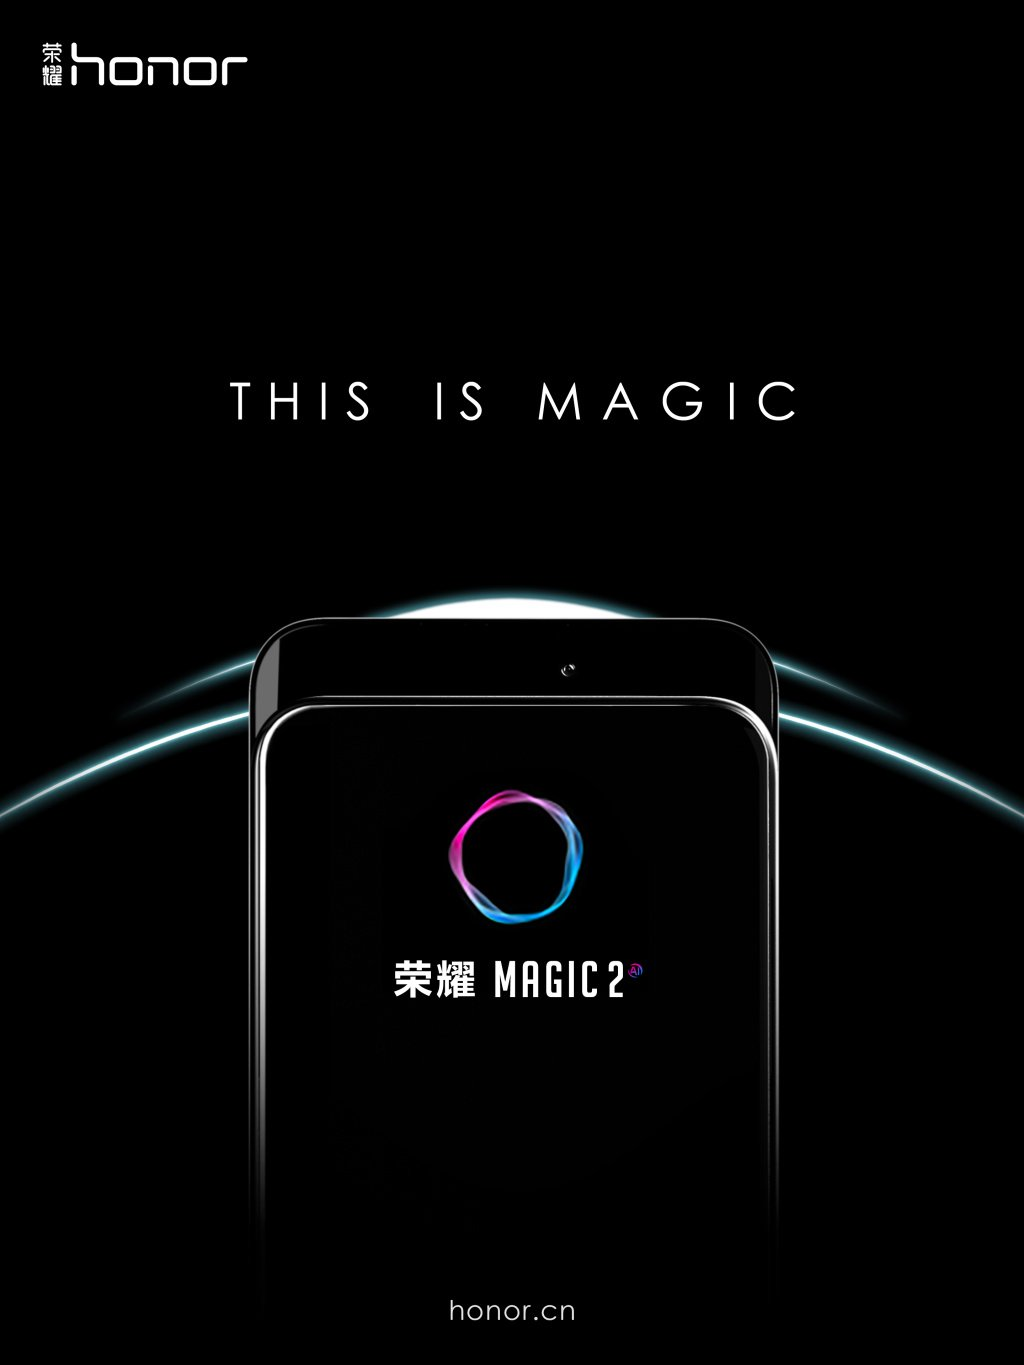 Honor Magic 2 has a slide-out camera mechanism